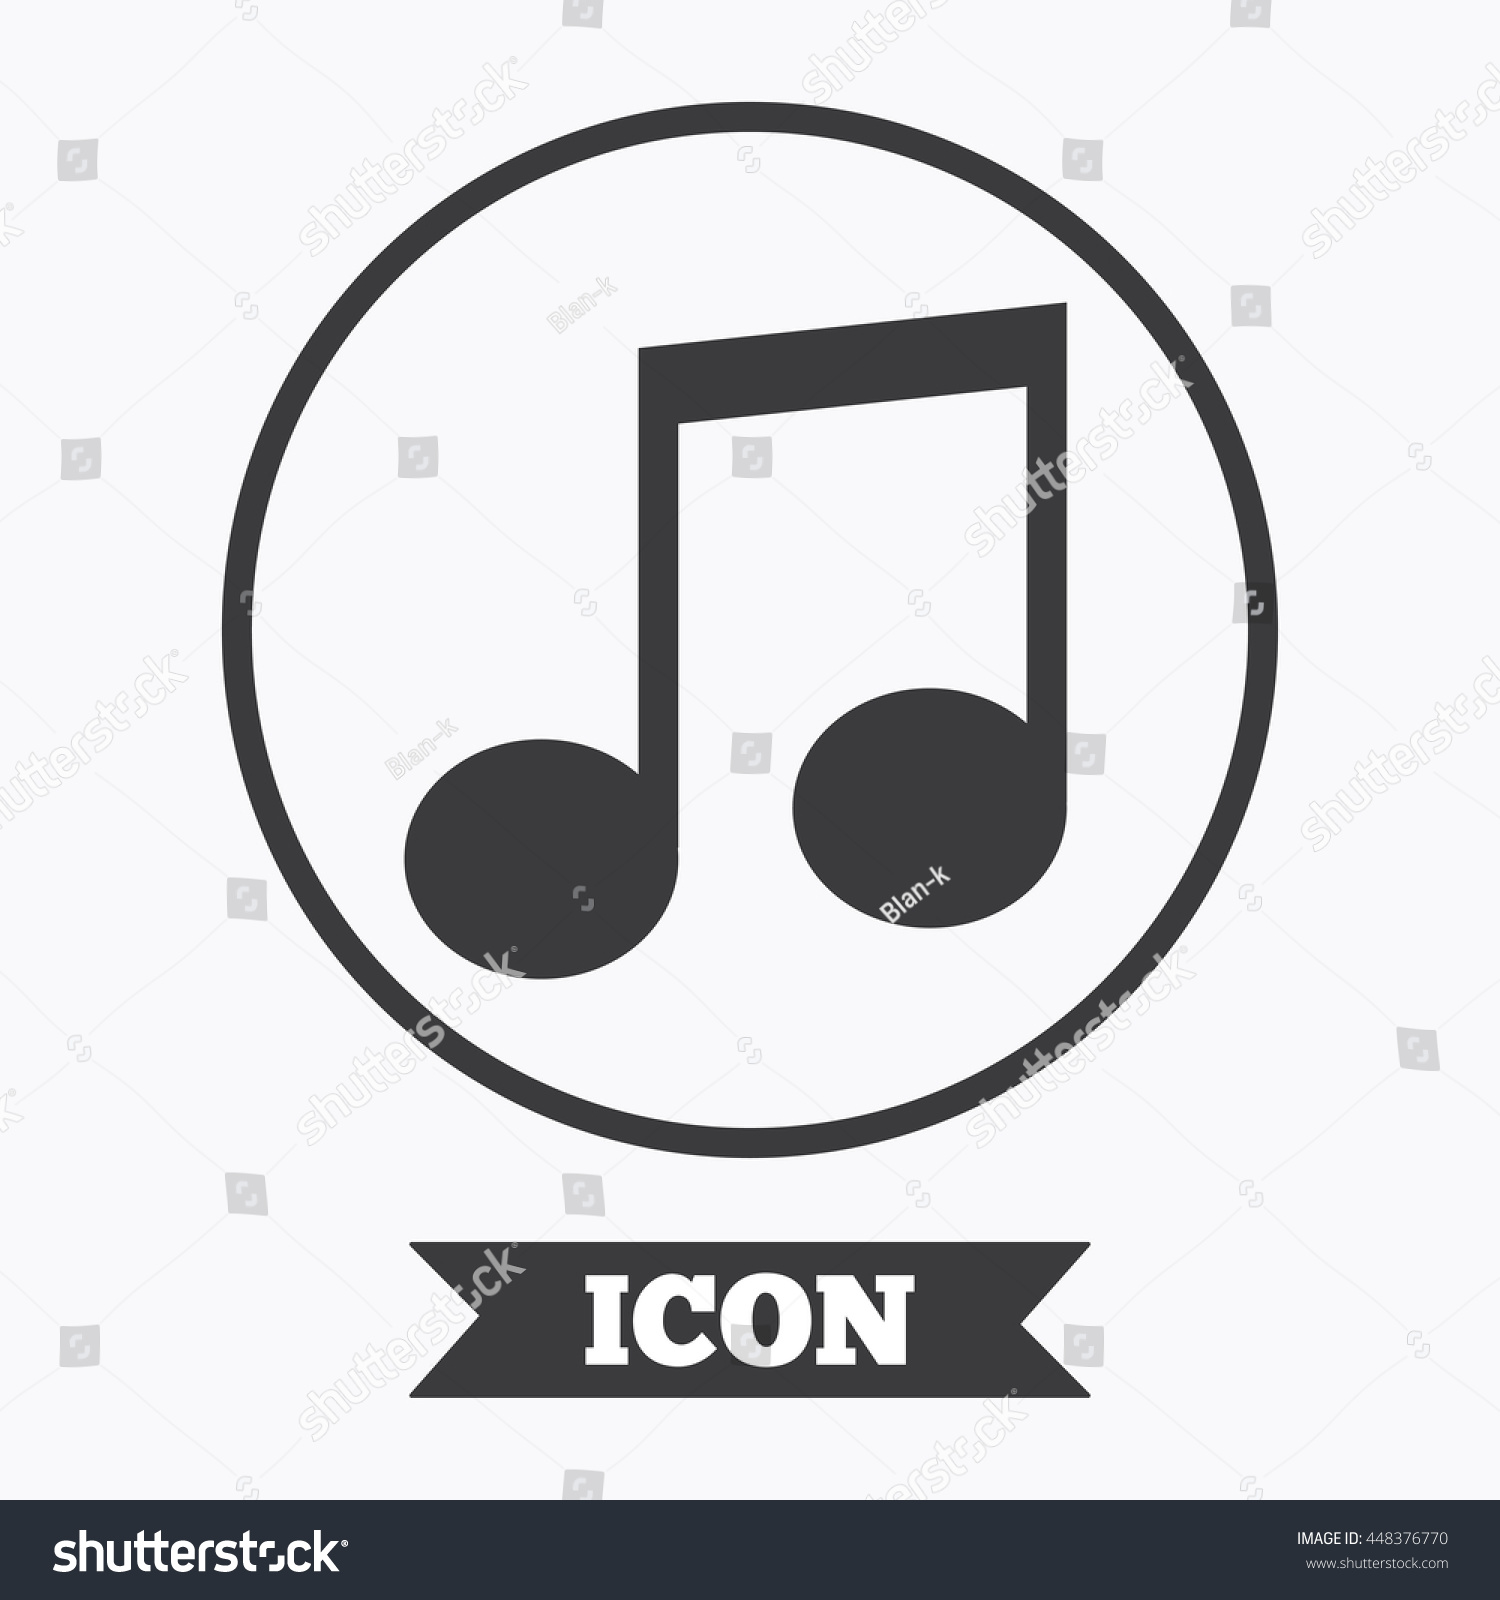 Music note sign icon musical symbol stock vector 448376770 music note sign icon musical symbol graphic design element flat symbol in circle buycottarizona Image collections